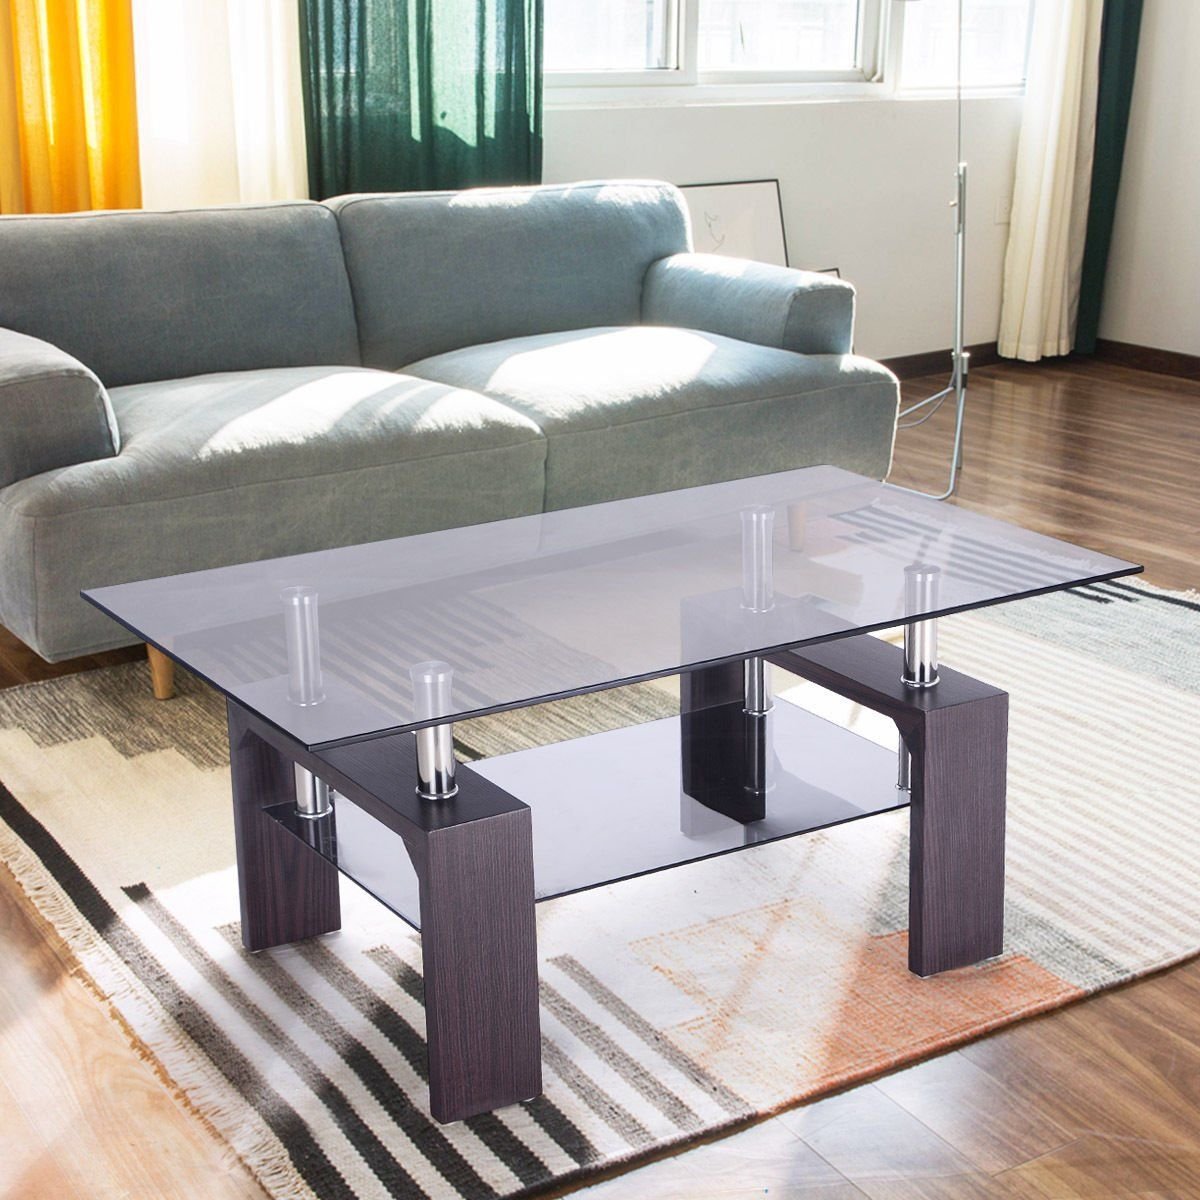 Amazon Com Tangkula Glass Coffee Table Modern Simple Style Rectangular Wood Legs End Side Table Li Glass Table Living Room Coffee Table Living Room Table Sets